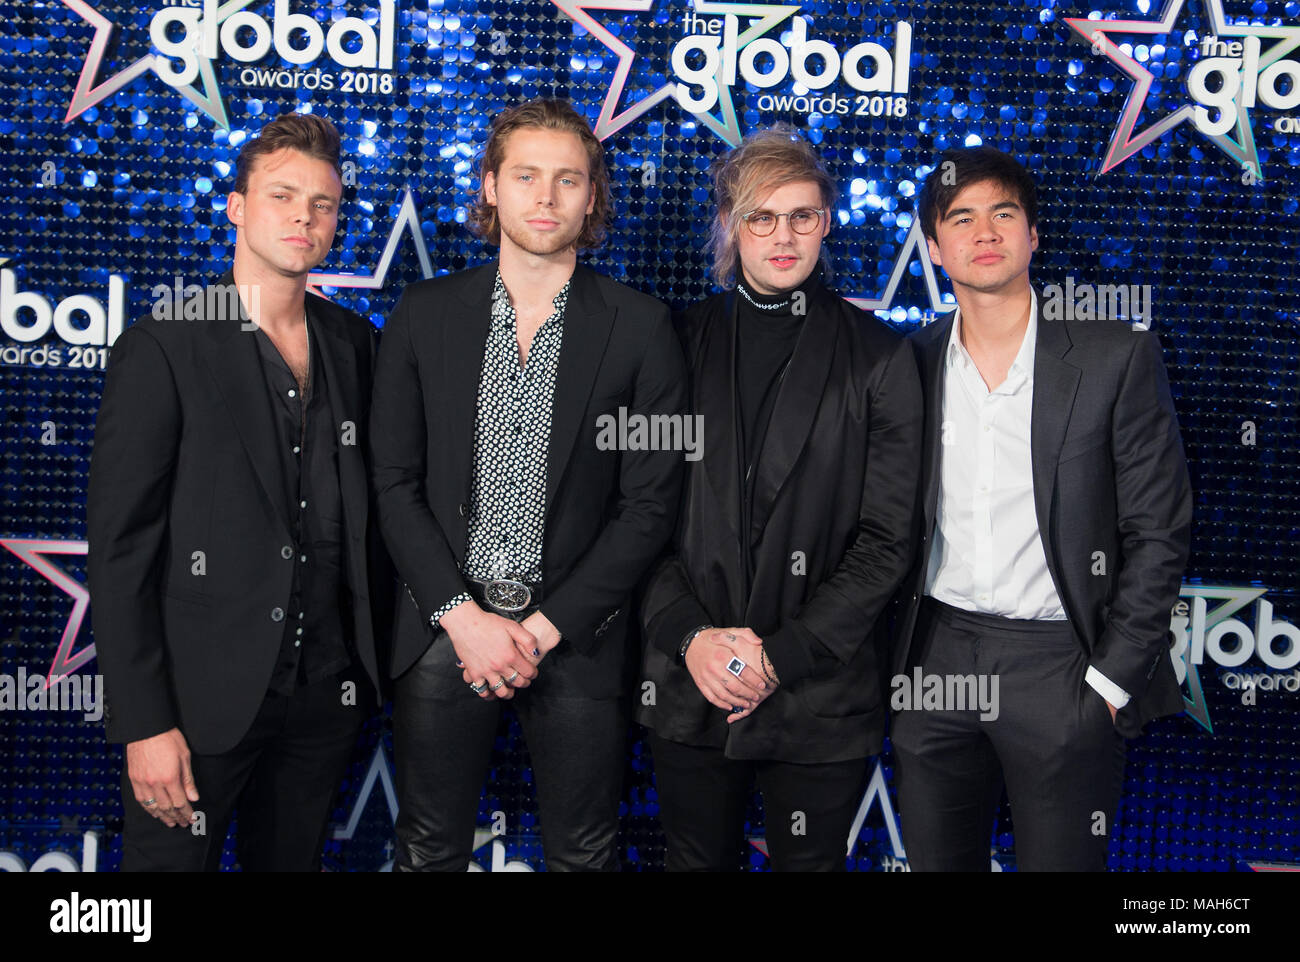 Global Awards 2018 At The Eventim Apollo Hammersmith Arrivals Featuring Ashton Irwin Luke Hemmings Michael Clifford Calum Hood 5 Seconds Of Summer